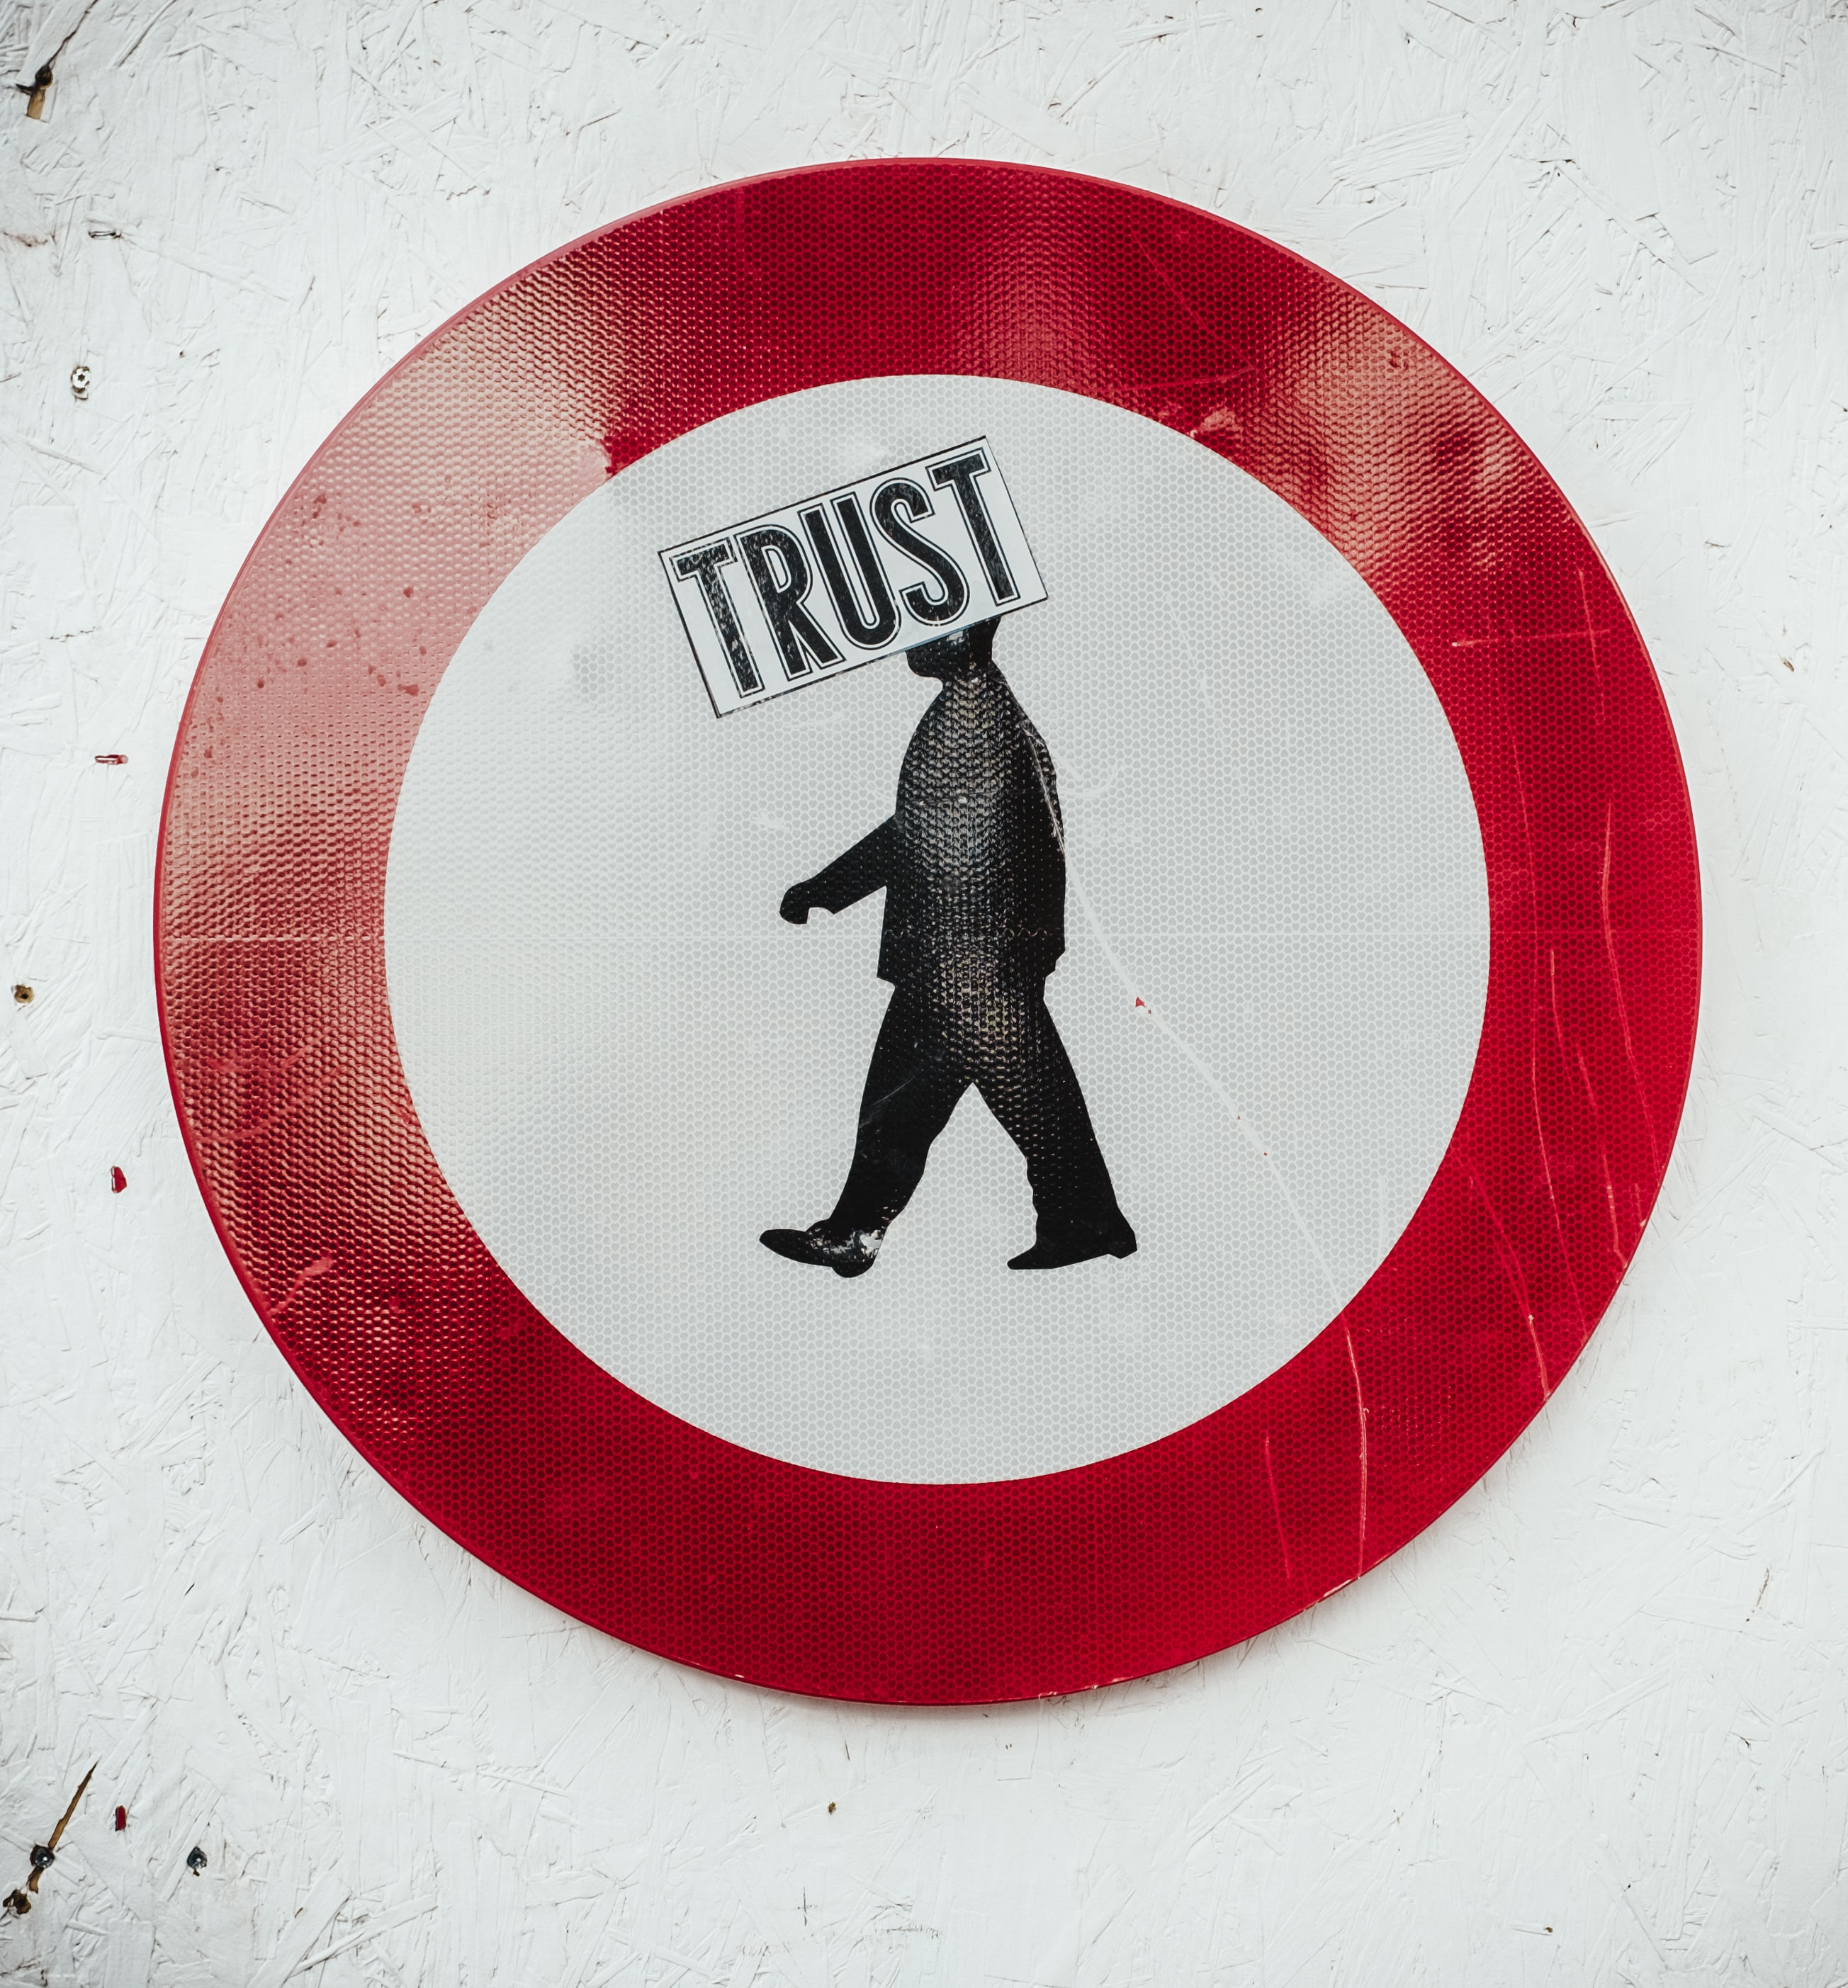 10 ways to earn and build customers trust image